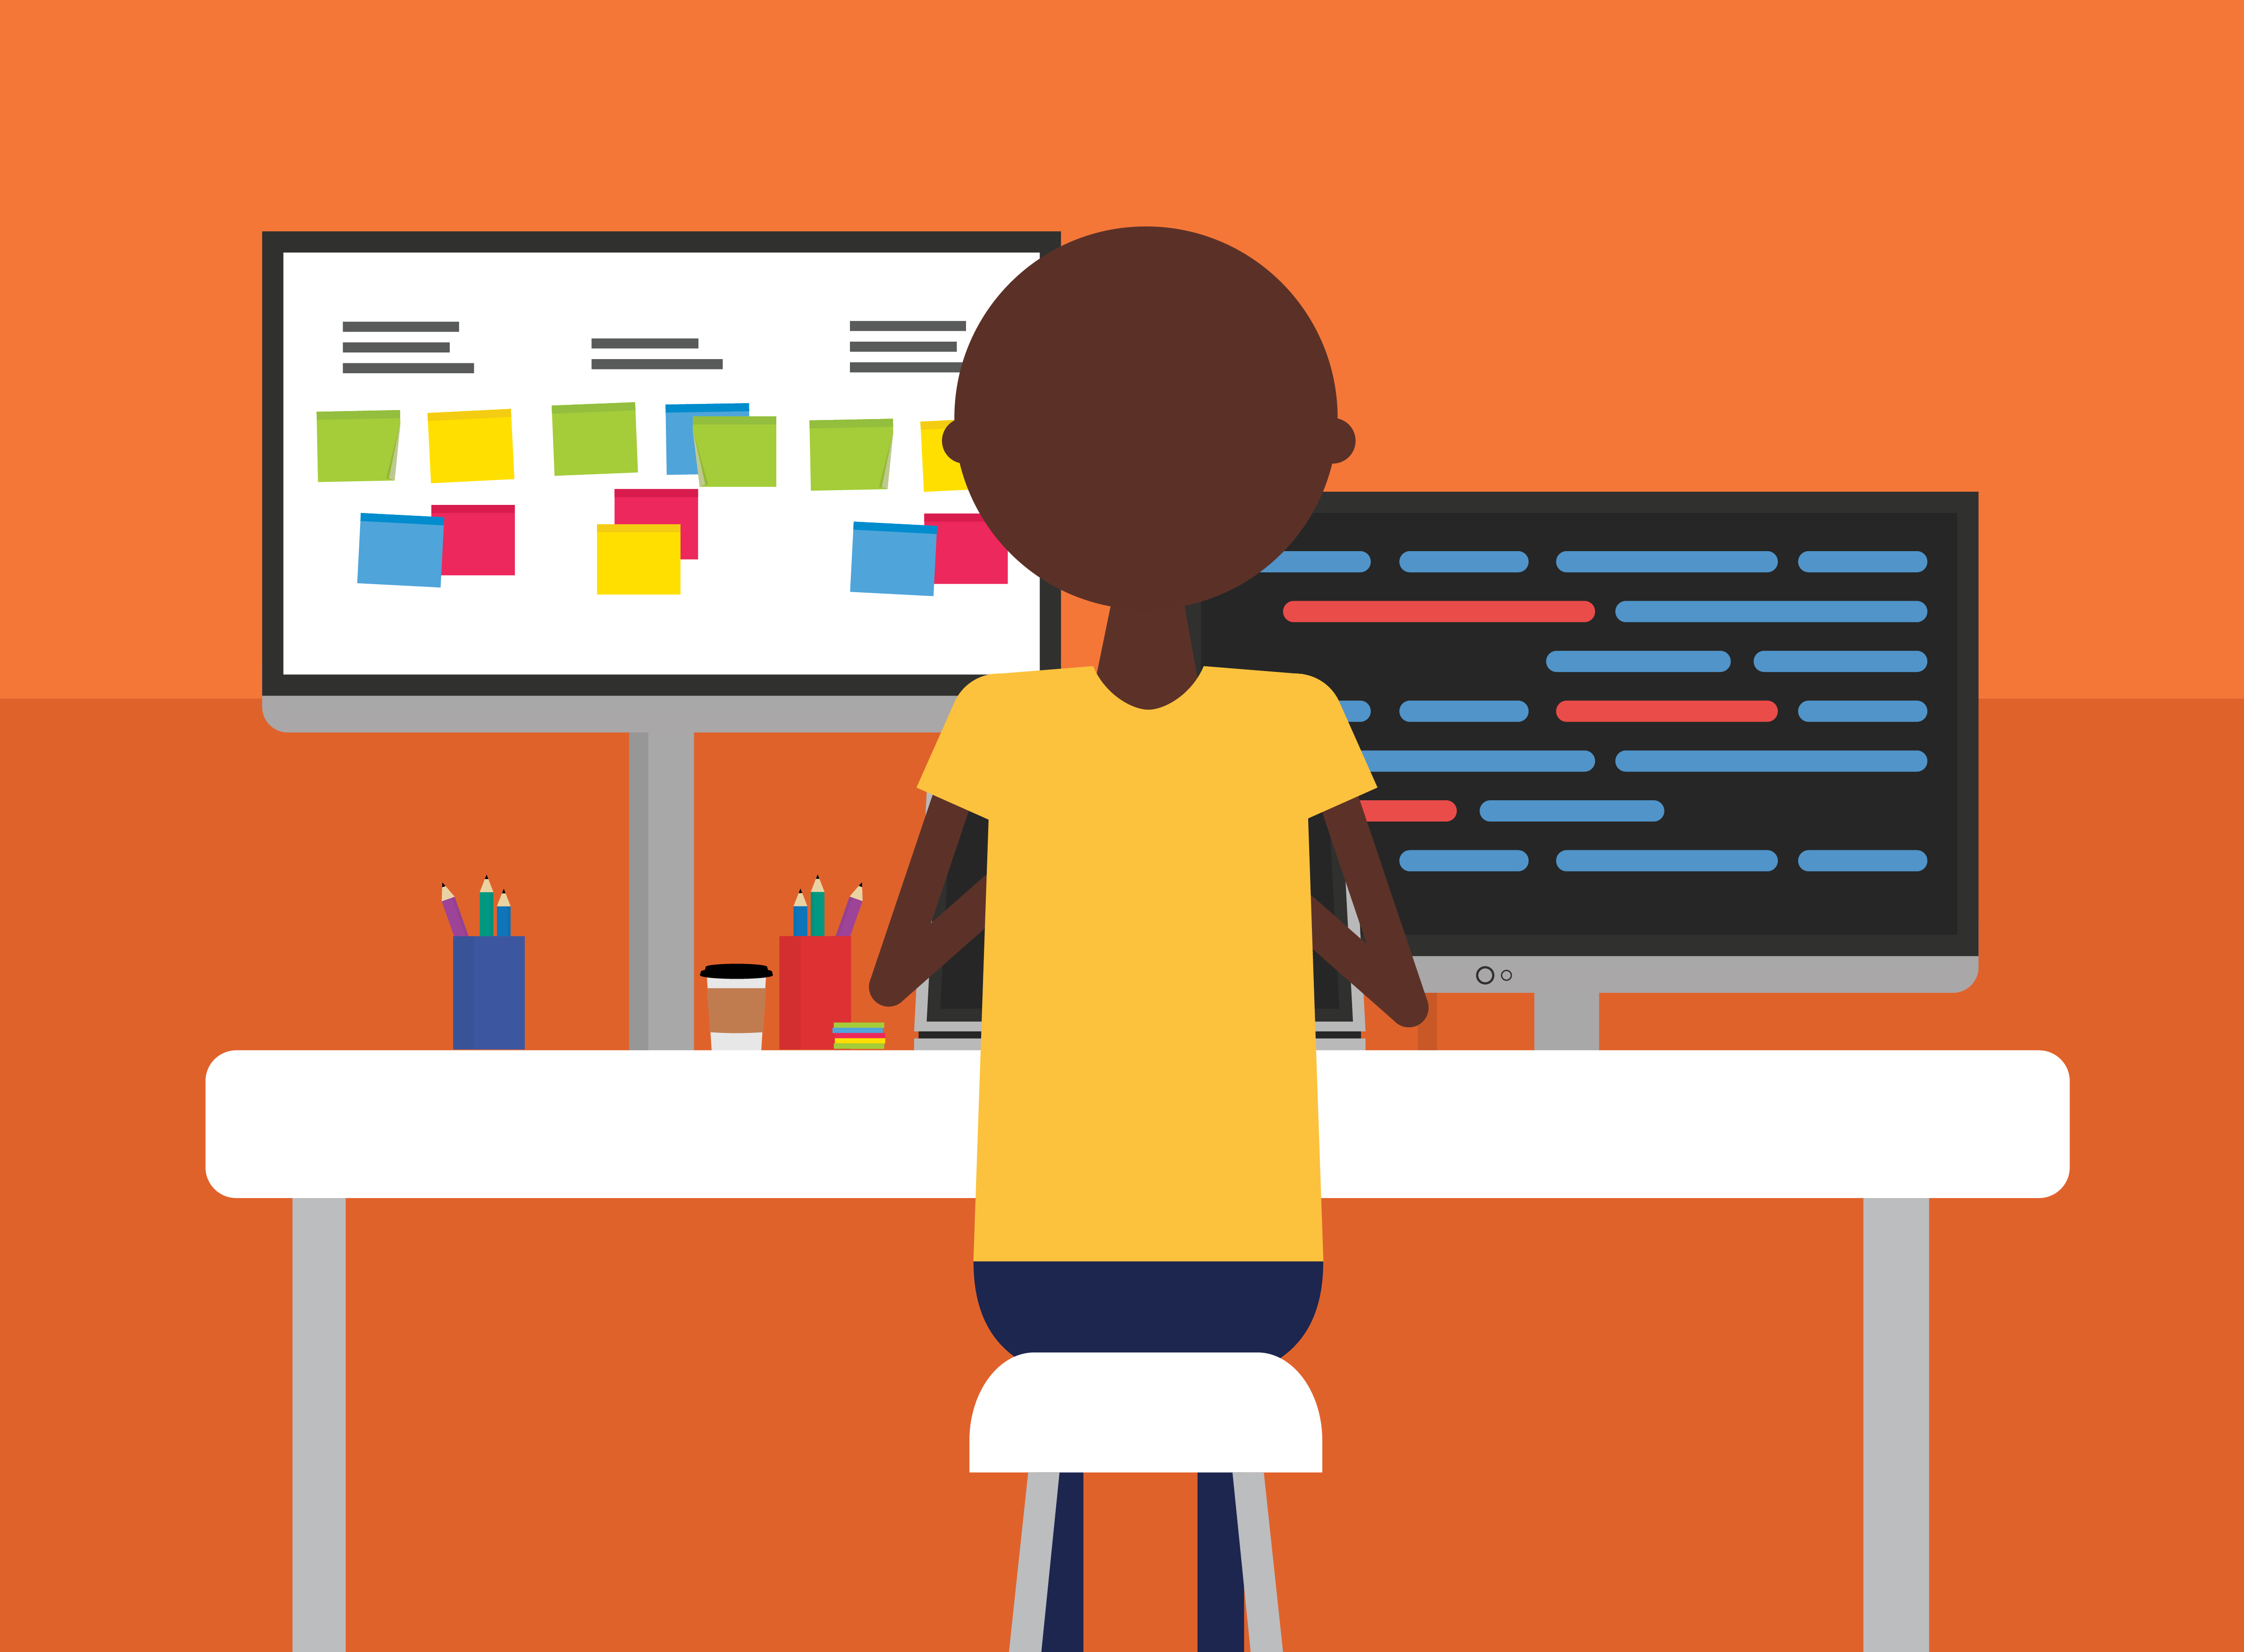 Graphic showing a person at a kanban board covering in data